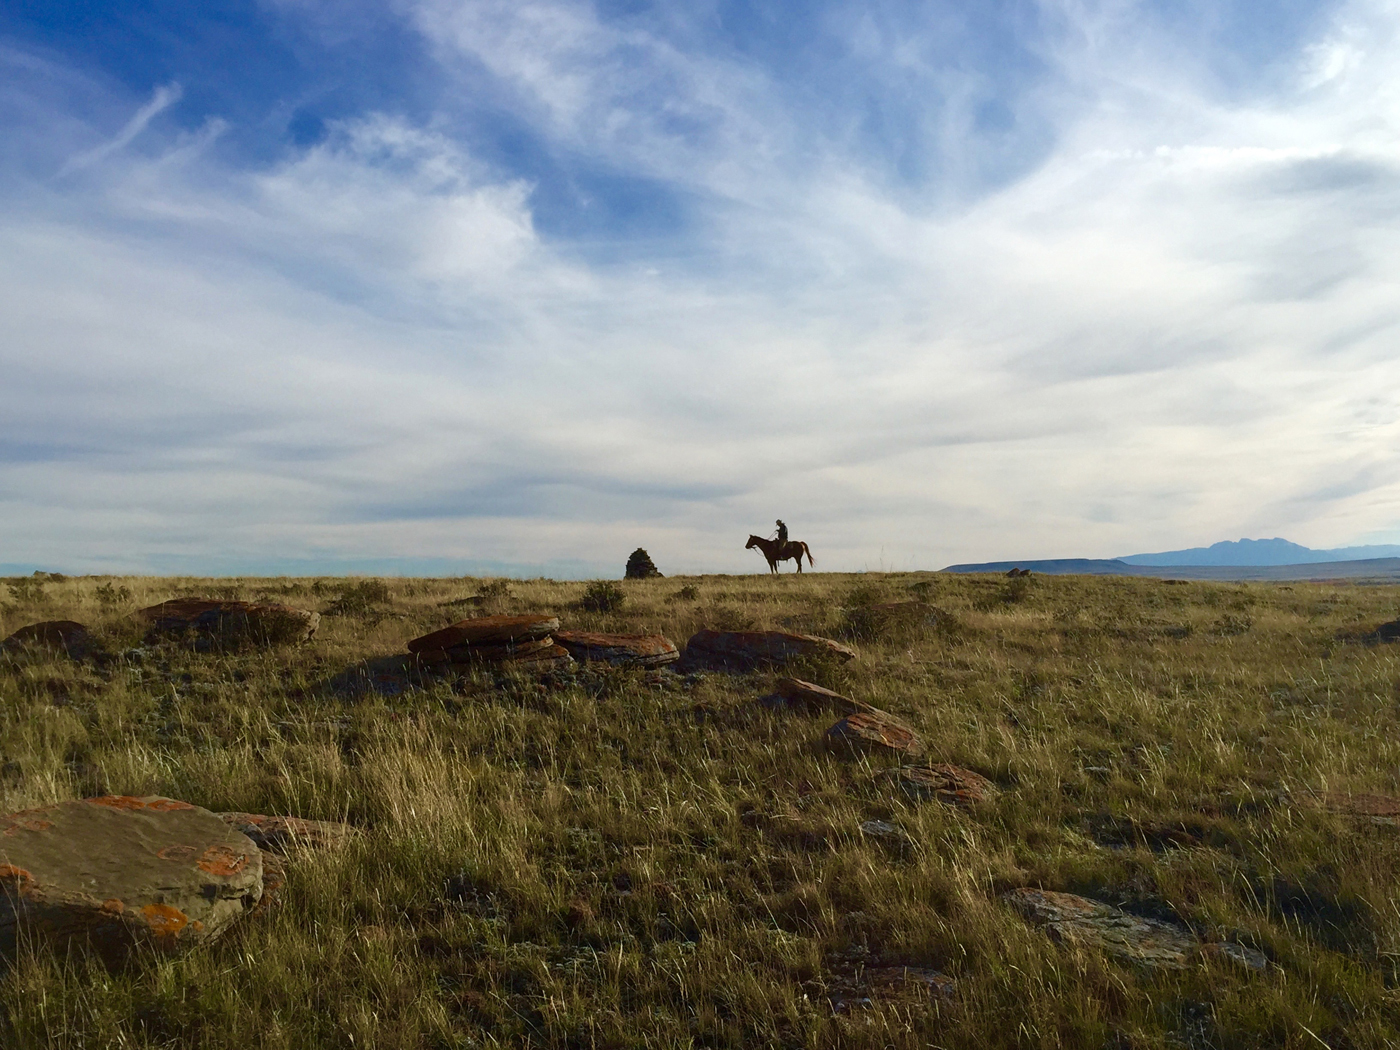 Dusty Crary visits his father's grave; Rancher, Farmer, Fisherman